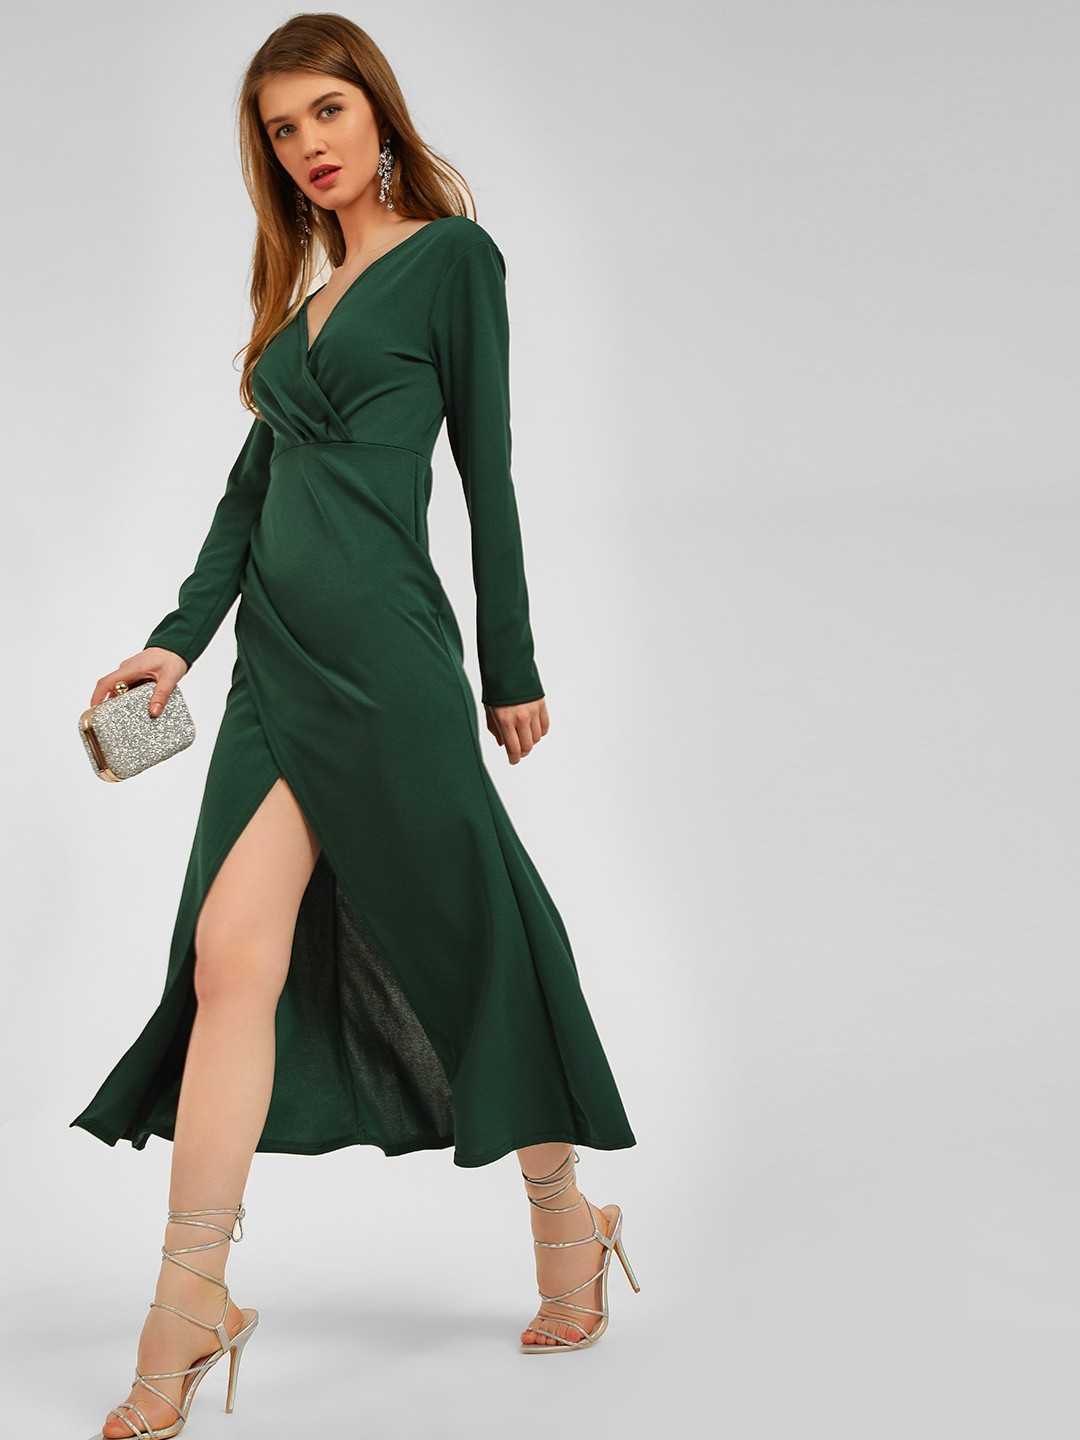 Origami Lily Green Front Wrap Midi Dress 1